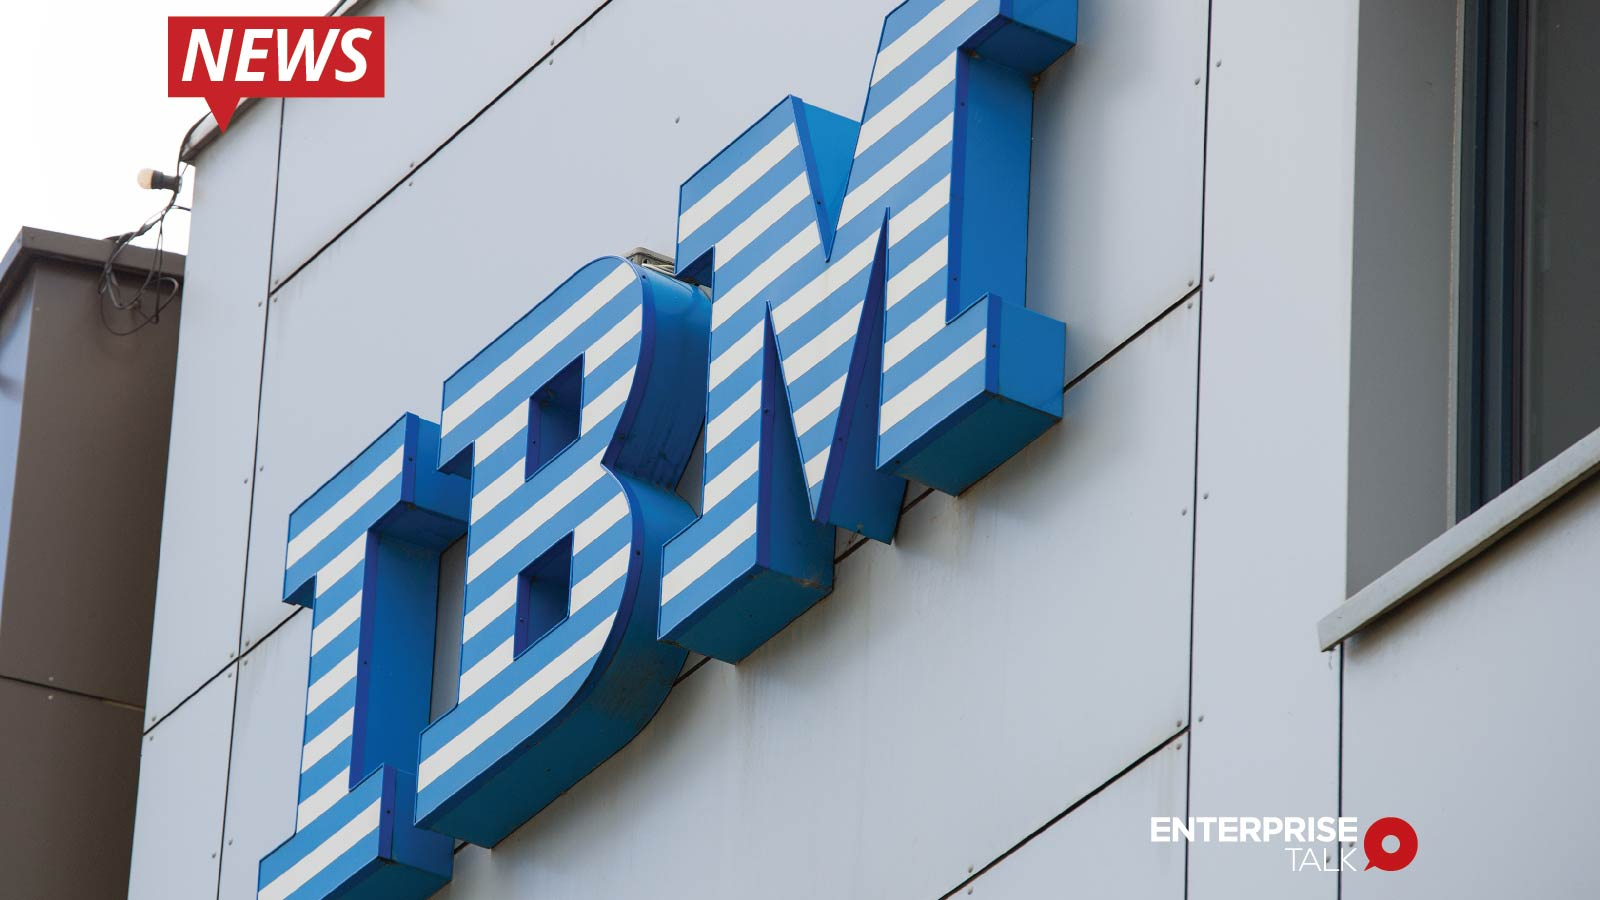 IBM Unveils New Capabilities Across IT Infrastructure Portfolio to Help Clients Modernize and Accelerate Path to Hybrid Cloud